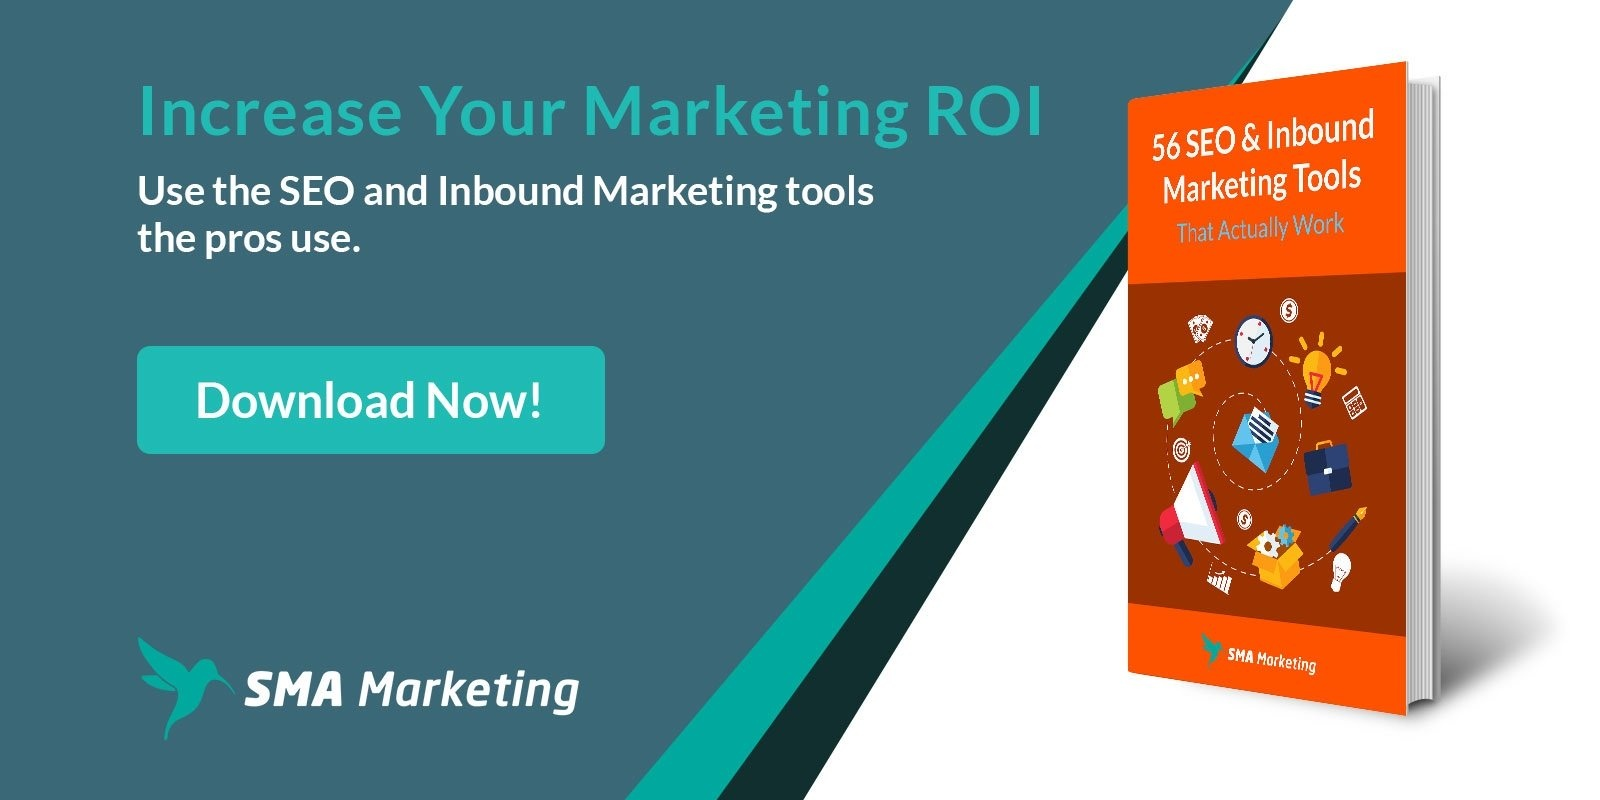 SEO Tool and Inbound Marketing Tools That Actually Work